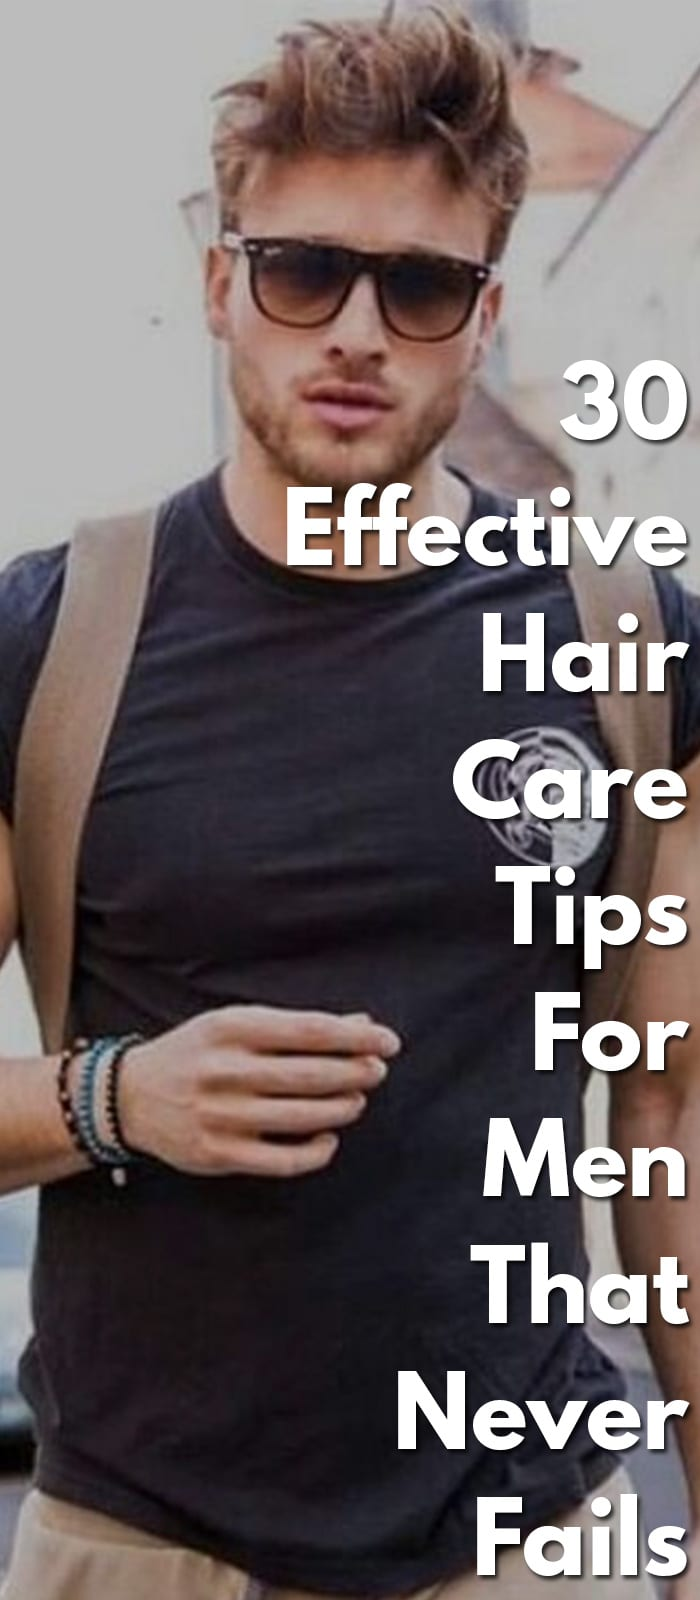 30-Effective-Hair-Care-Tips-For-Men-That-Never-Fails.